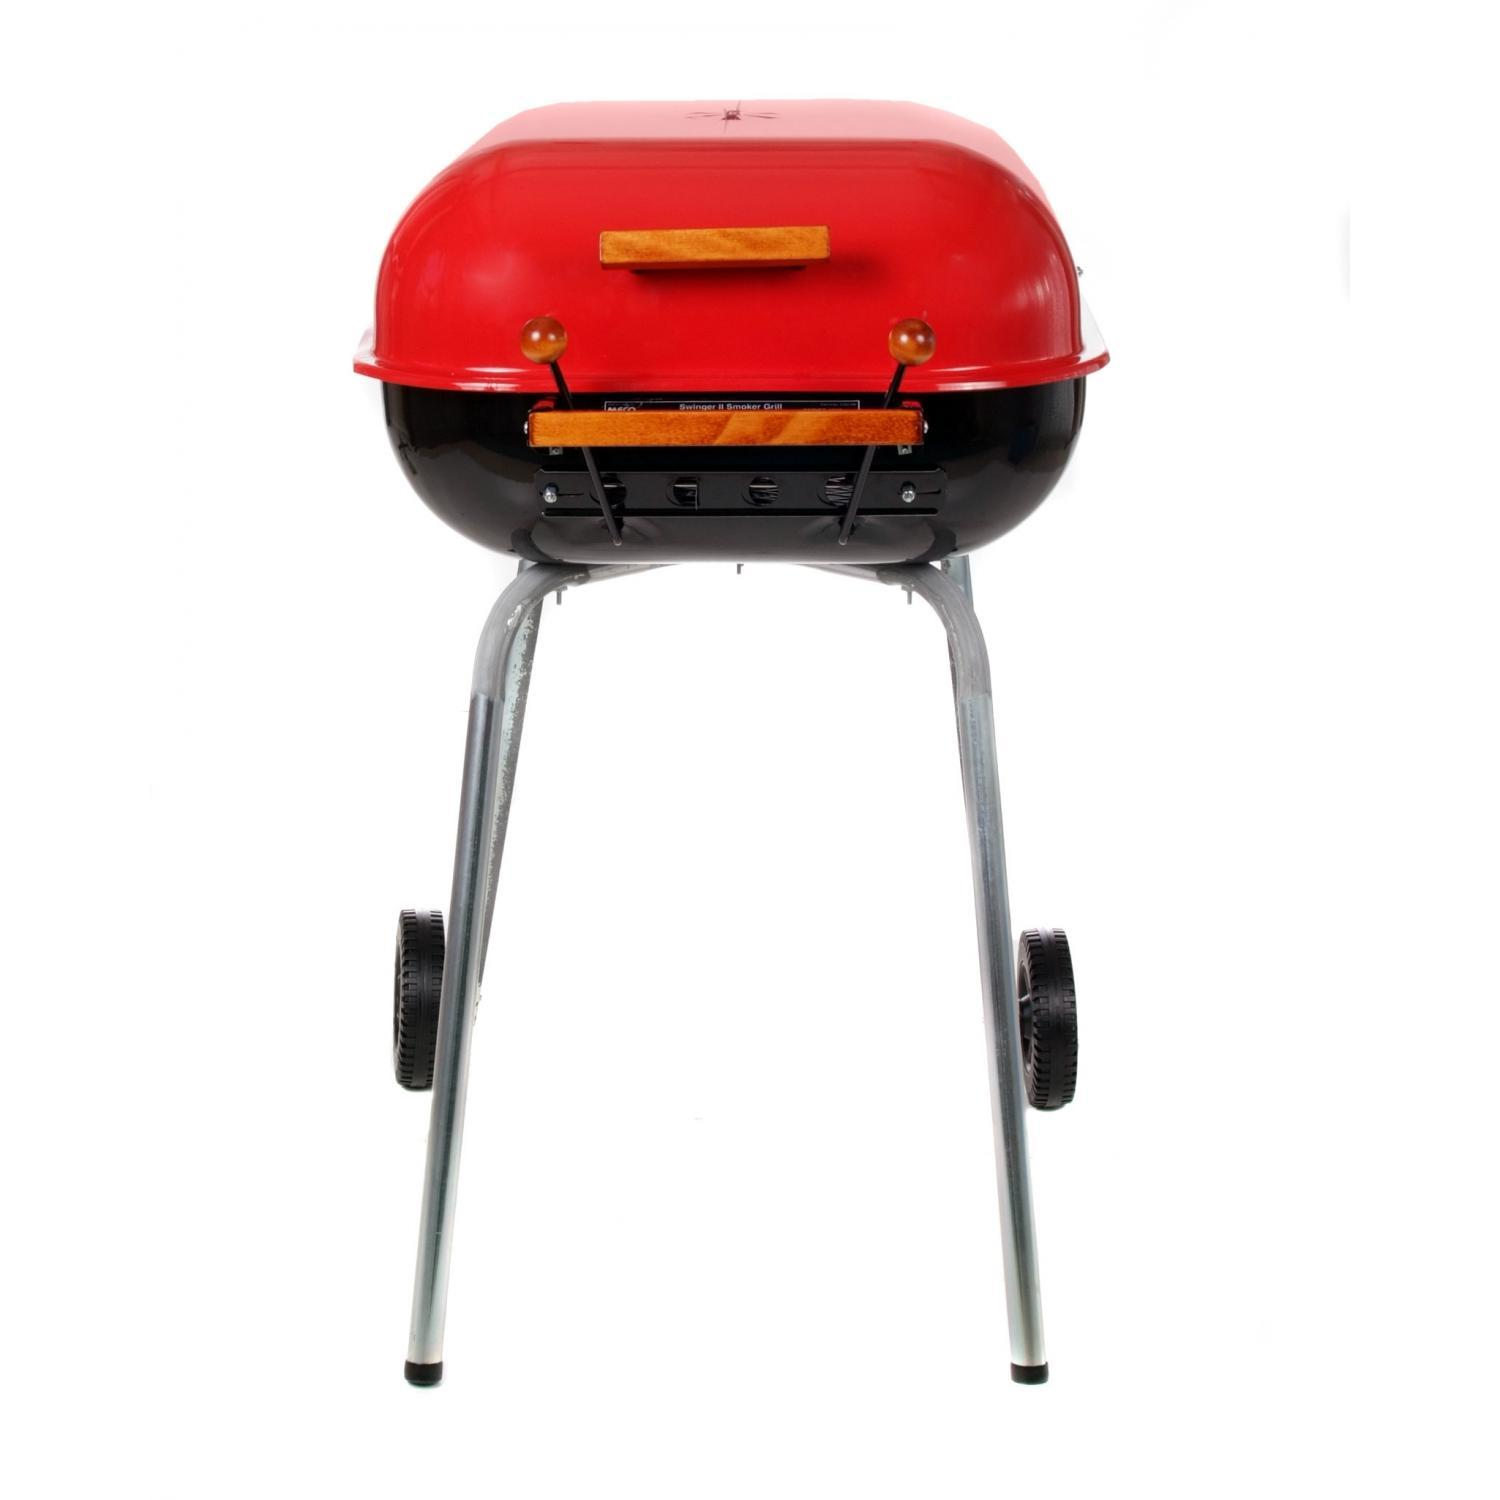 Barbecue clipart red grill With Charcoal Grill Charcoal Red